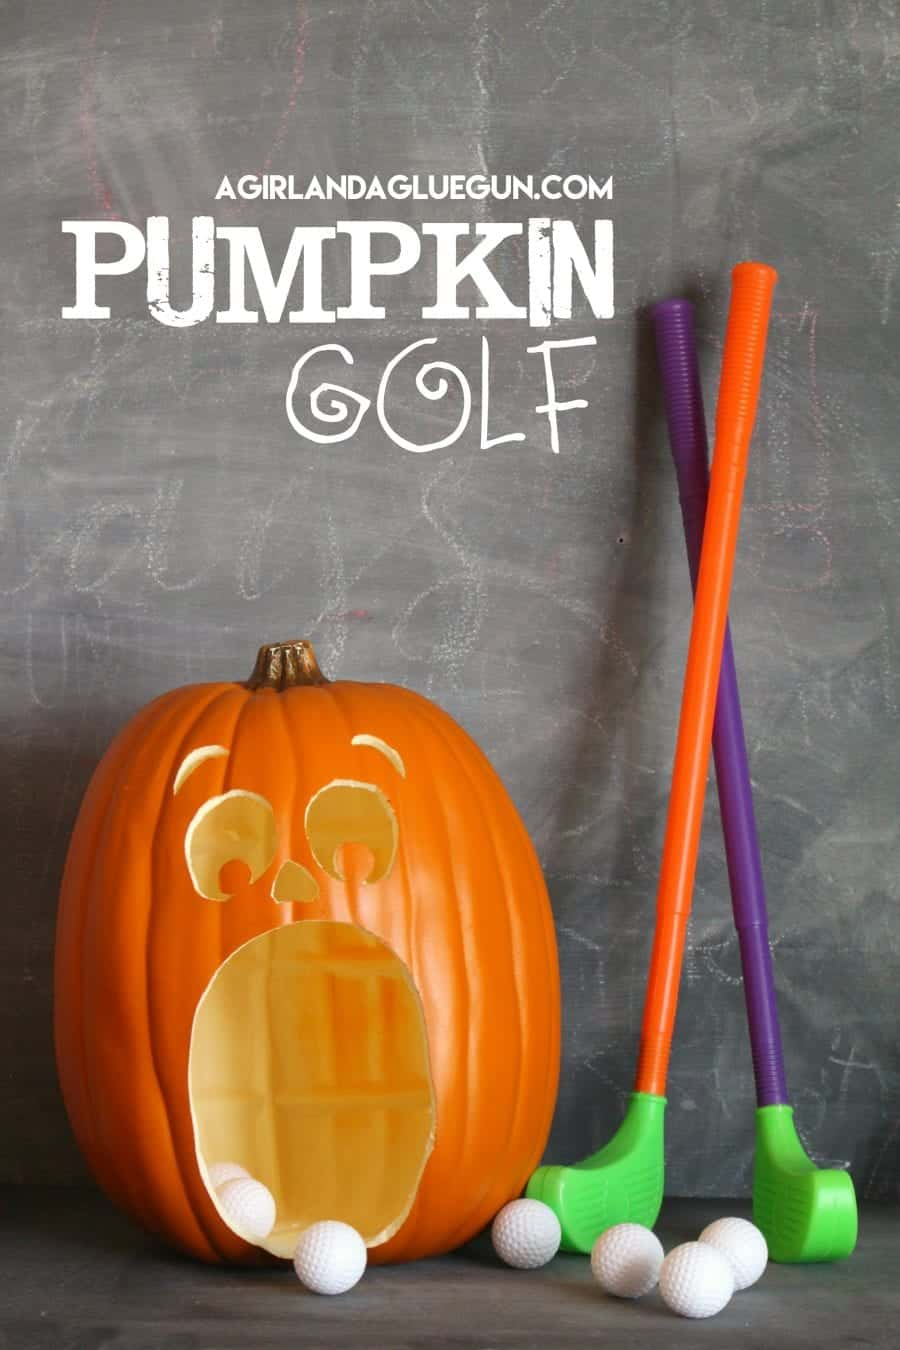 pumpkin-golf-fun-kids-game